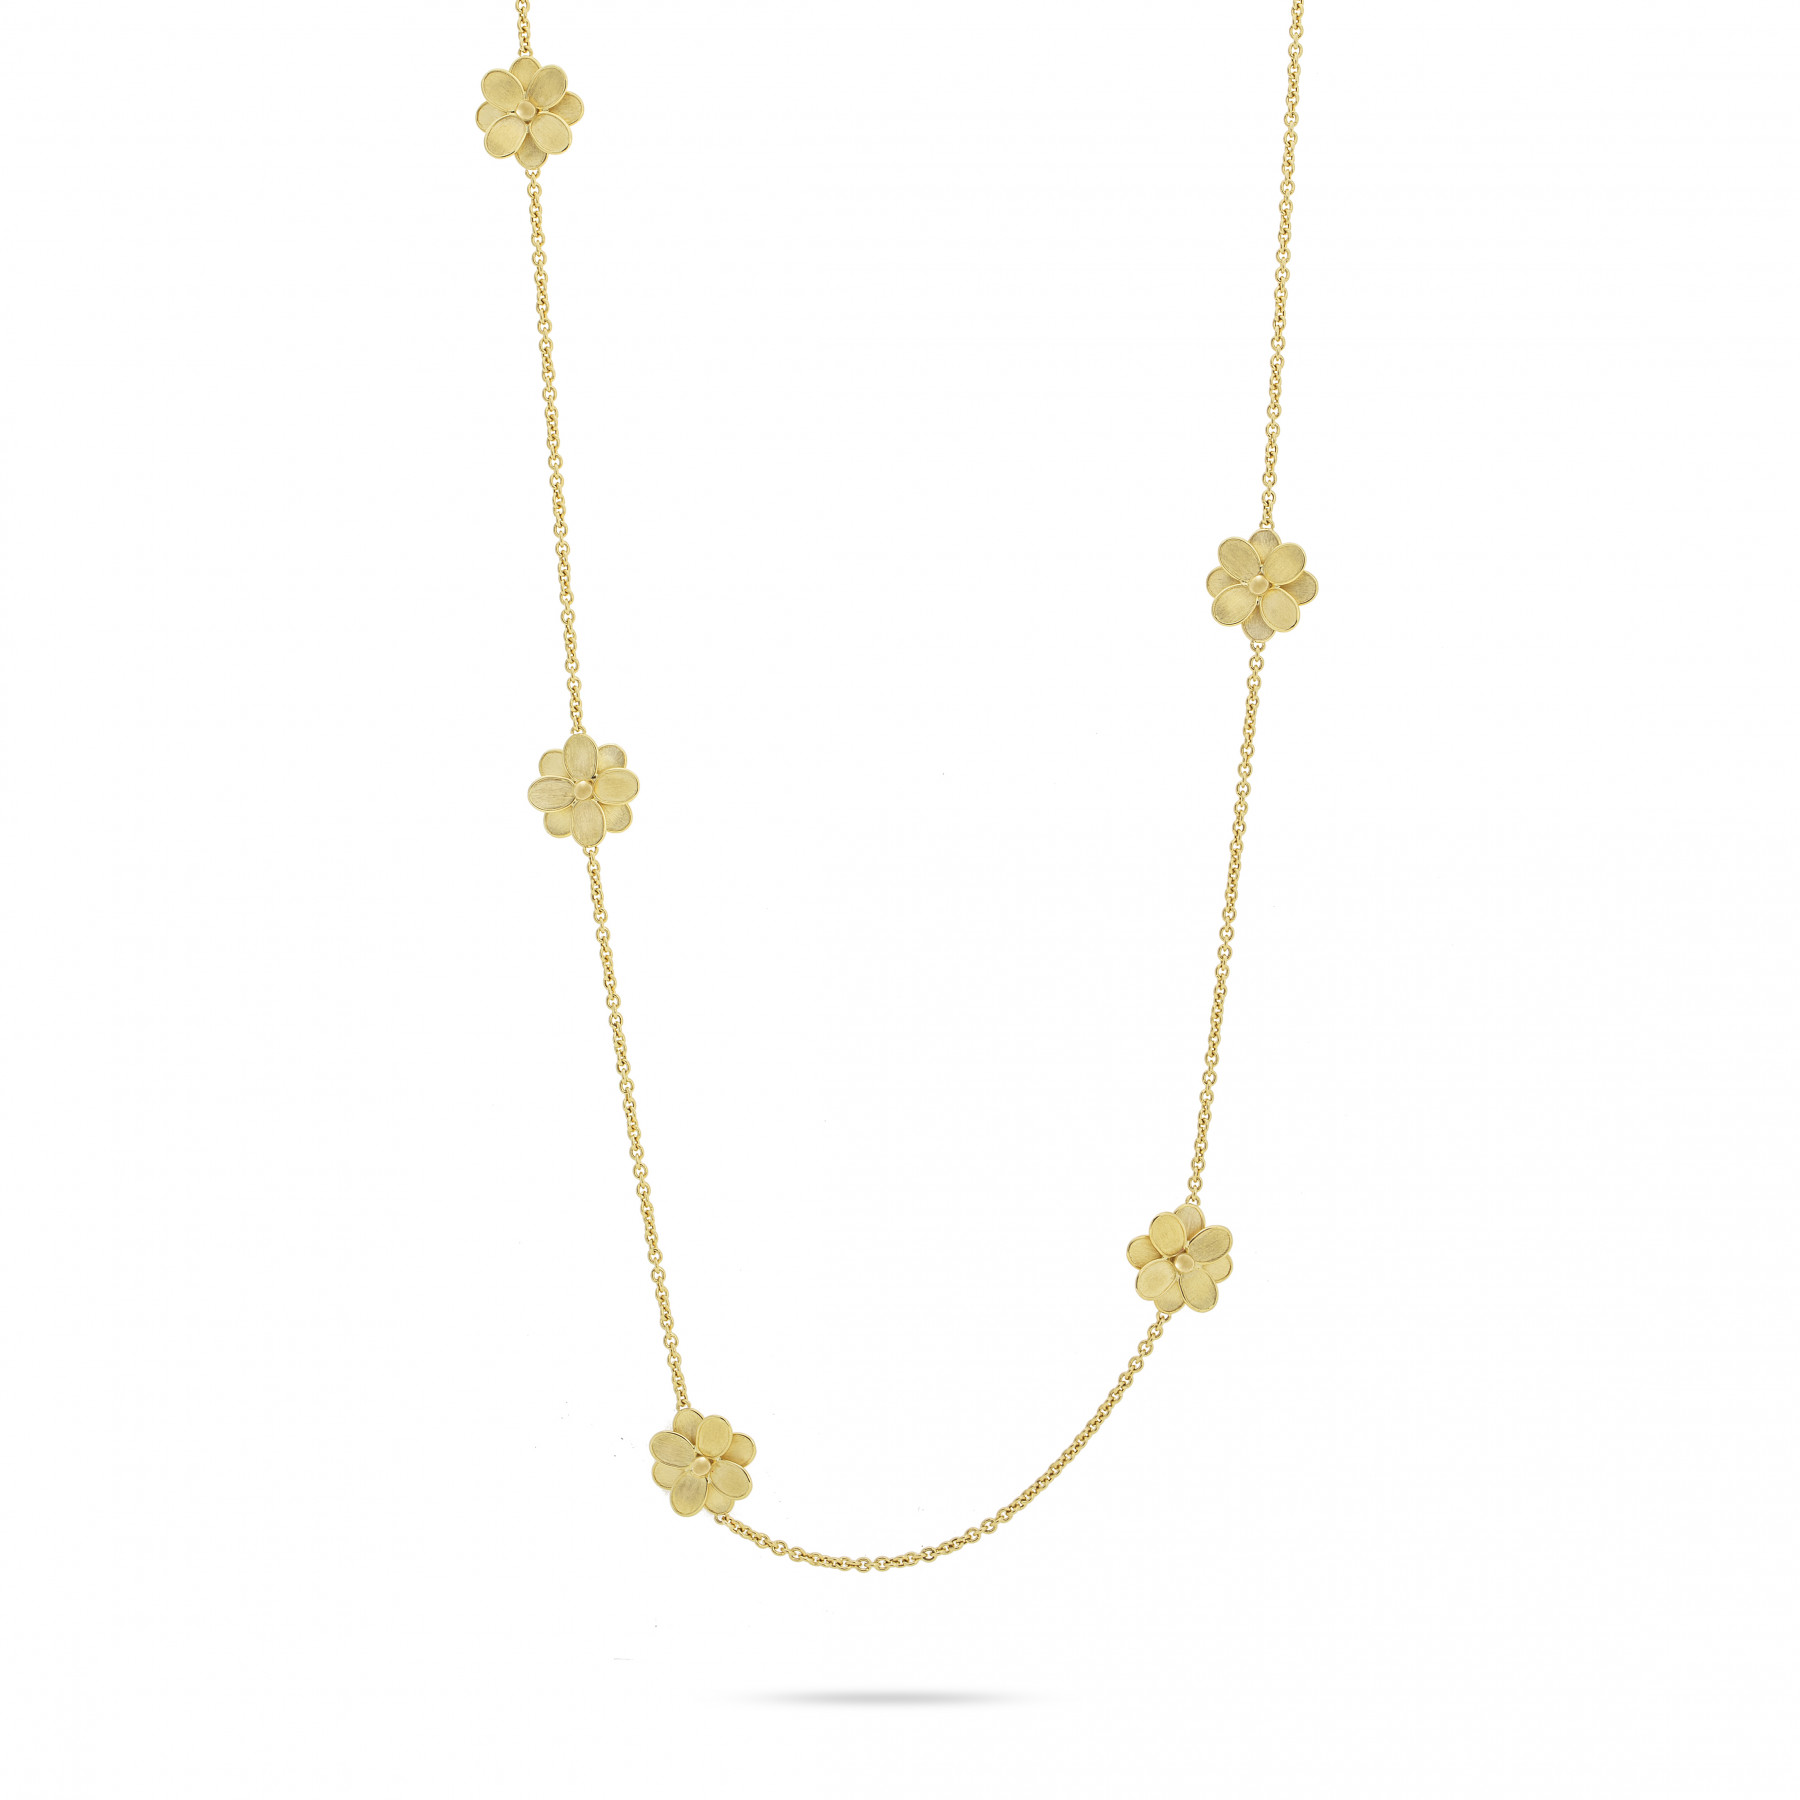 Marco Bicego Petali Yellow Gold Station Necklace